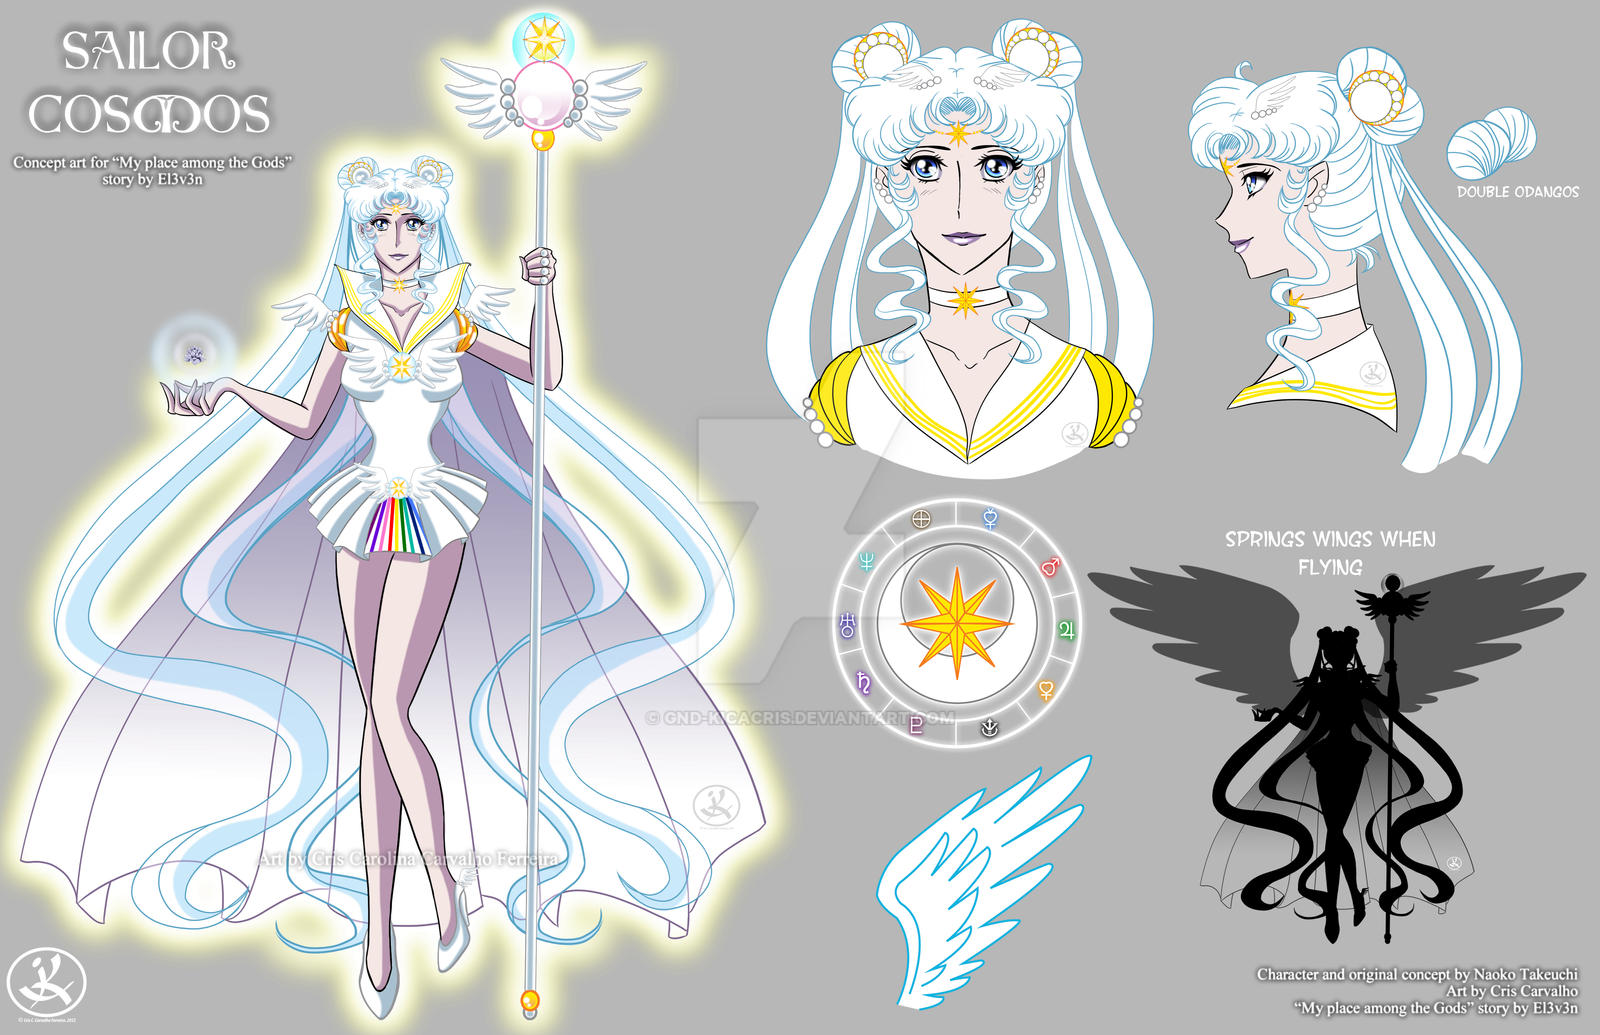 Mpatg Sailor Cosmos Concept Art By Gnd Kicacris On Deviantart